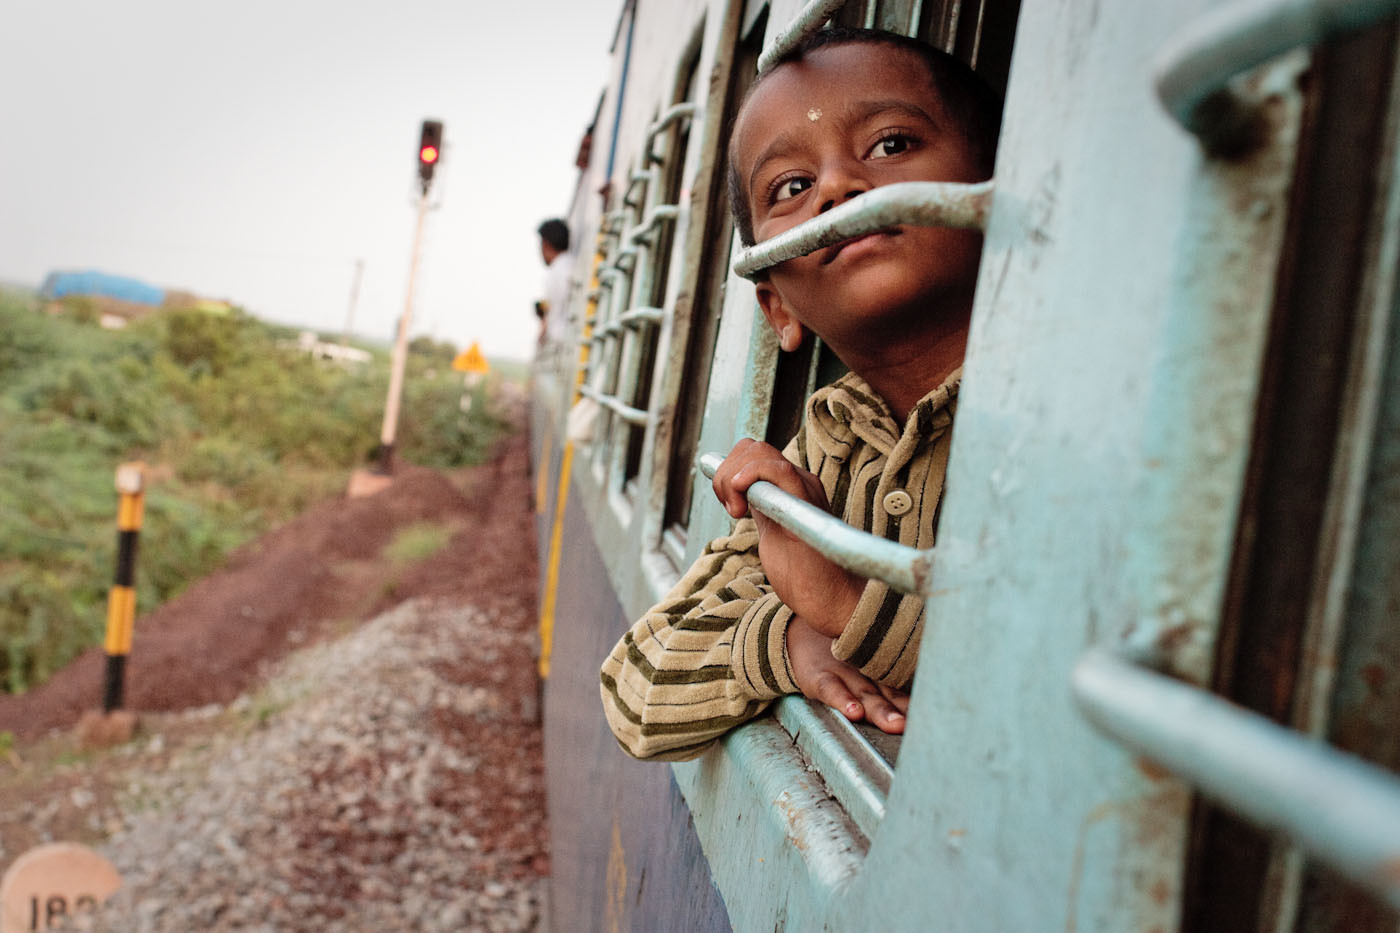 View of the exterior of a train in southern India. A young boy is sticking his head from the window of the sleeper car.